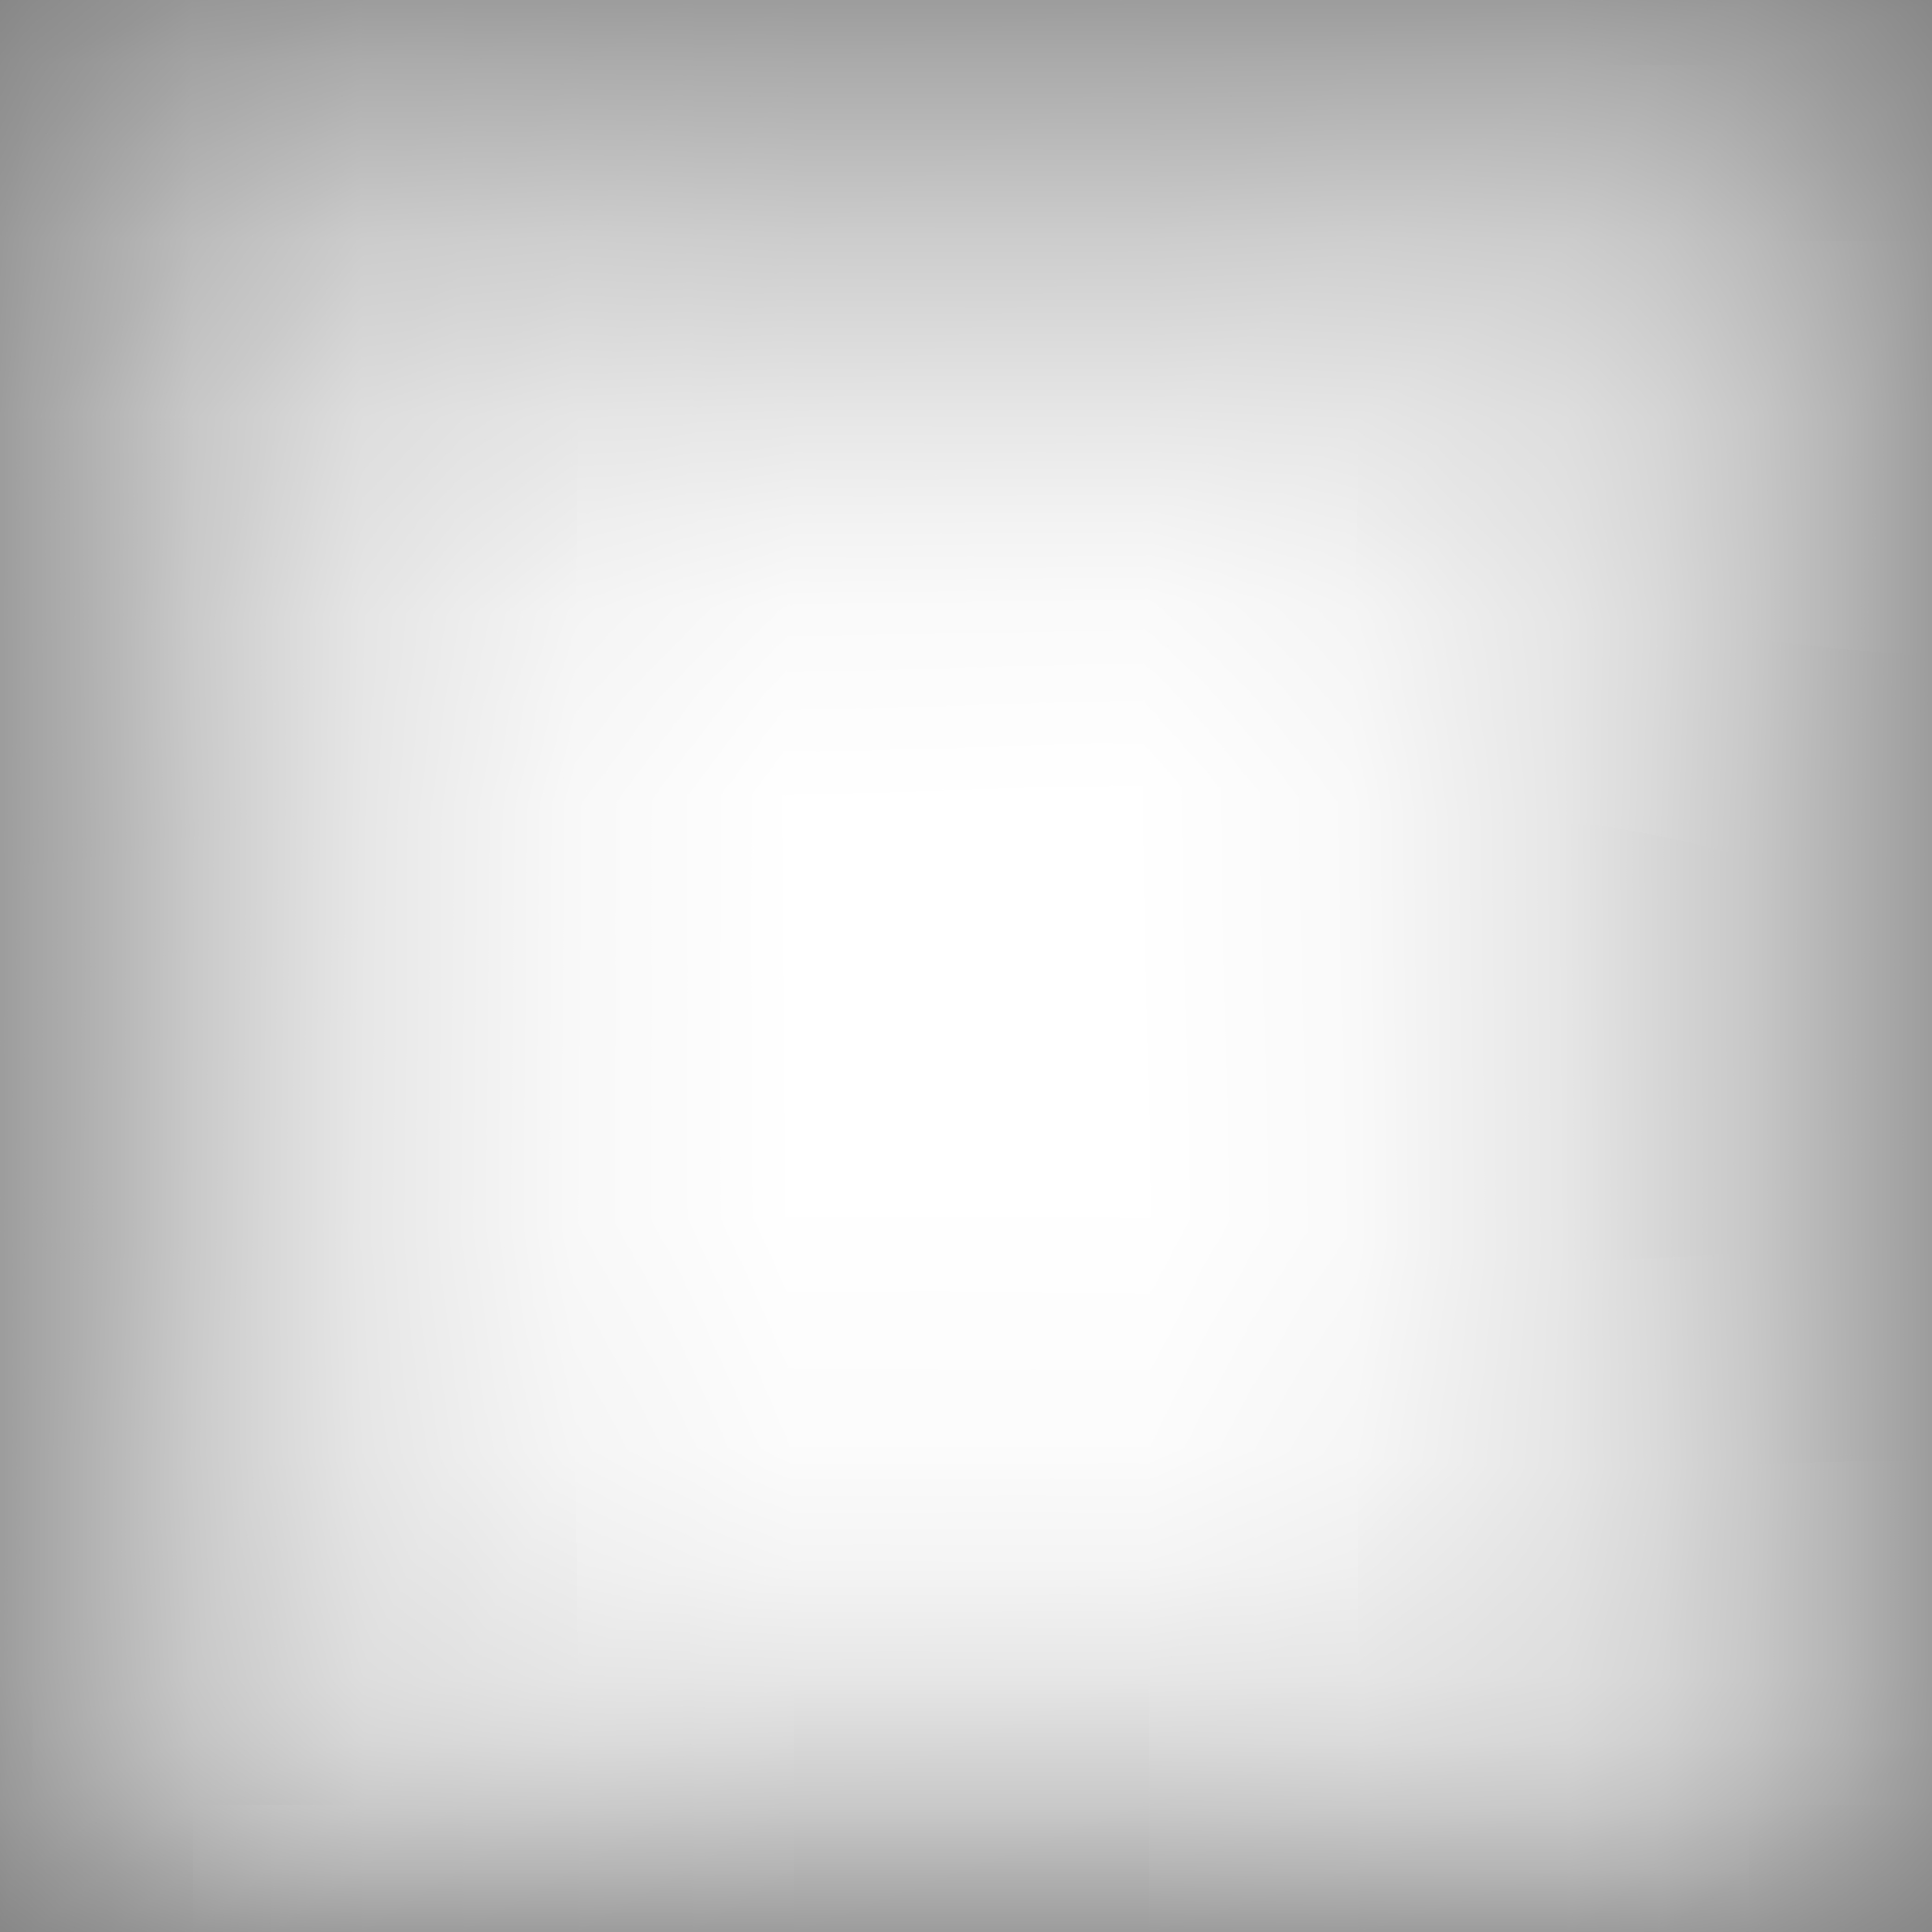 Blurred silver effect holographic gradient background example image 2